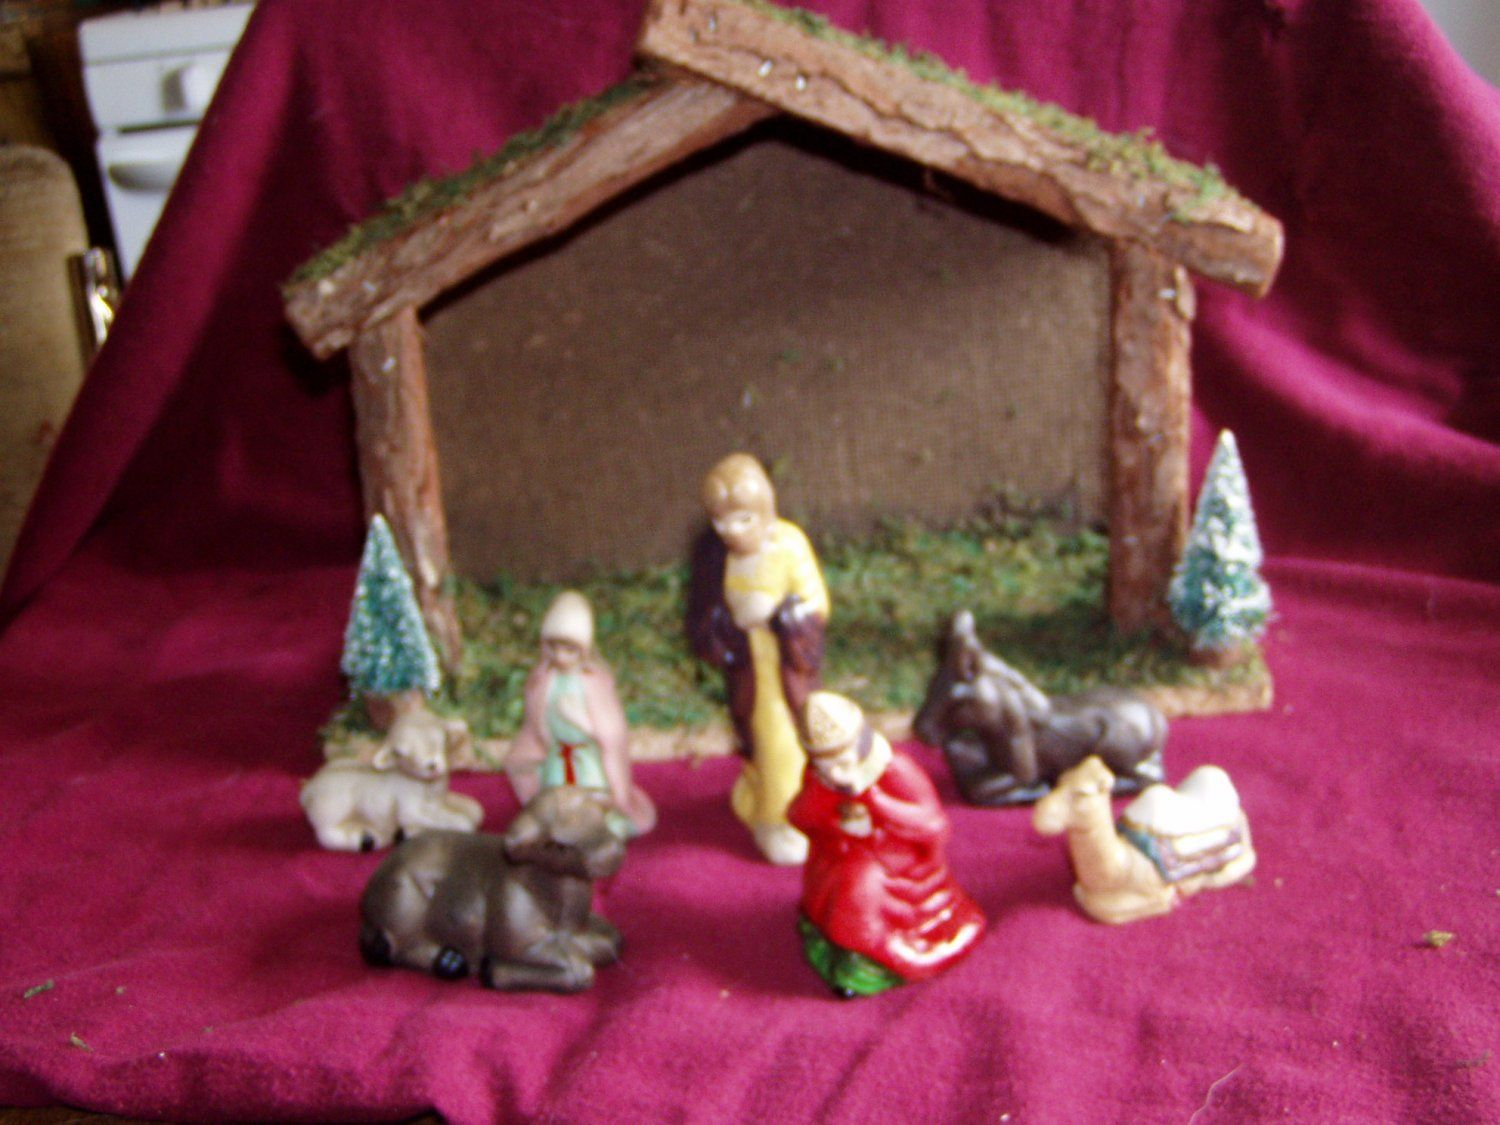 Nativity Set by Midwestern Home Products 7pc. with Stable for sale at Wenzel Thrifty Nickel ecrater store